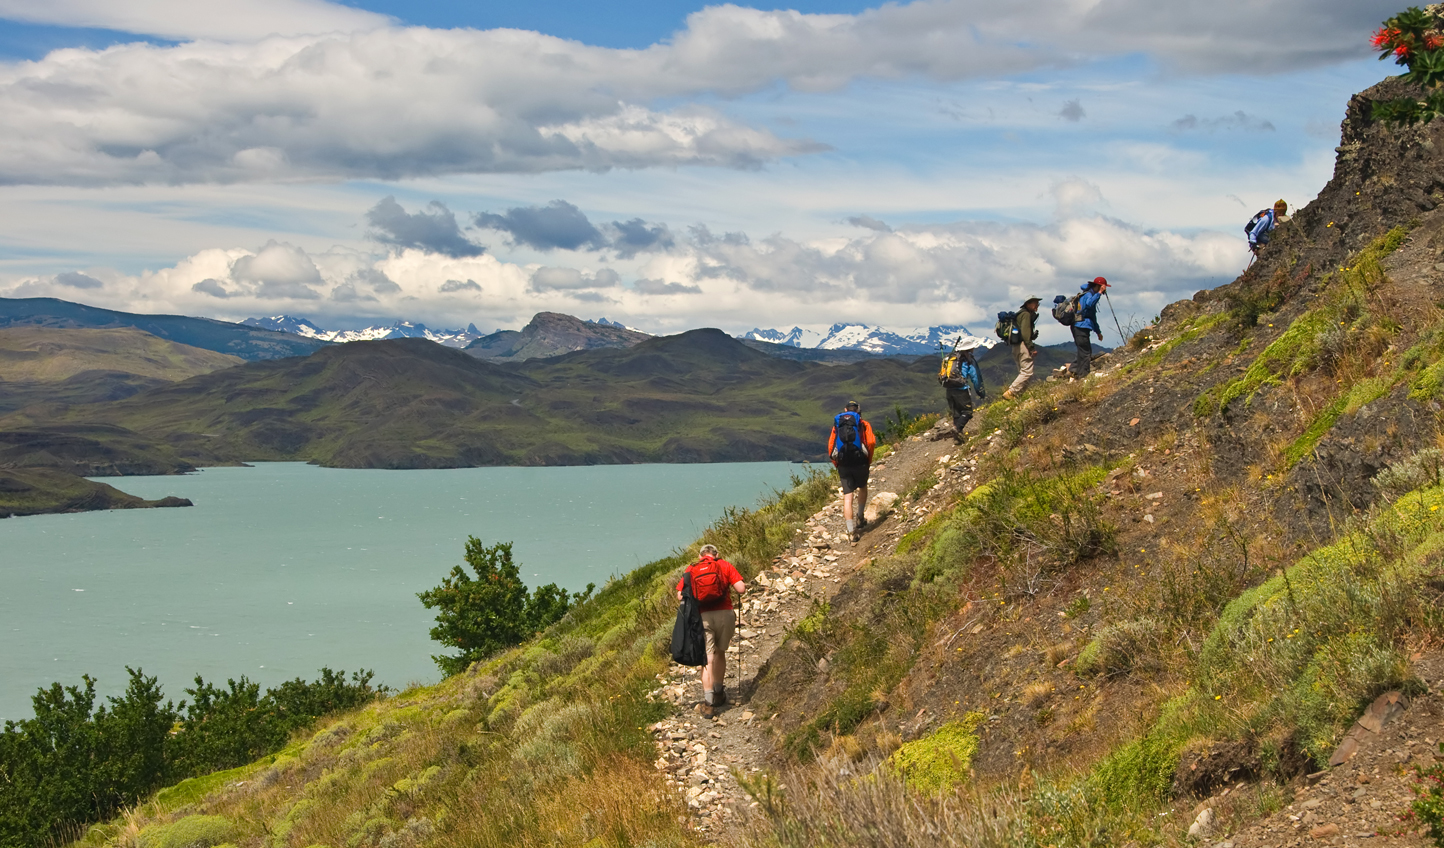 The best way to explore the Torres del Paine National Park